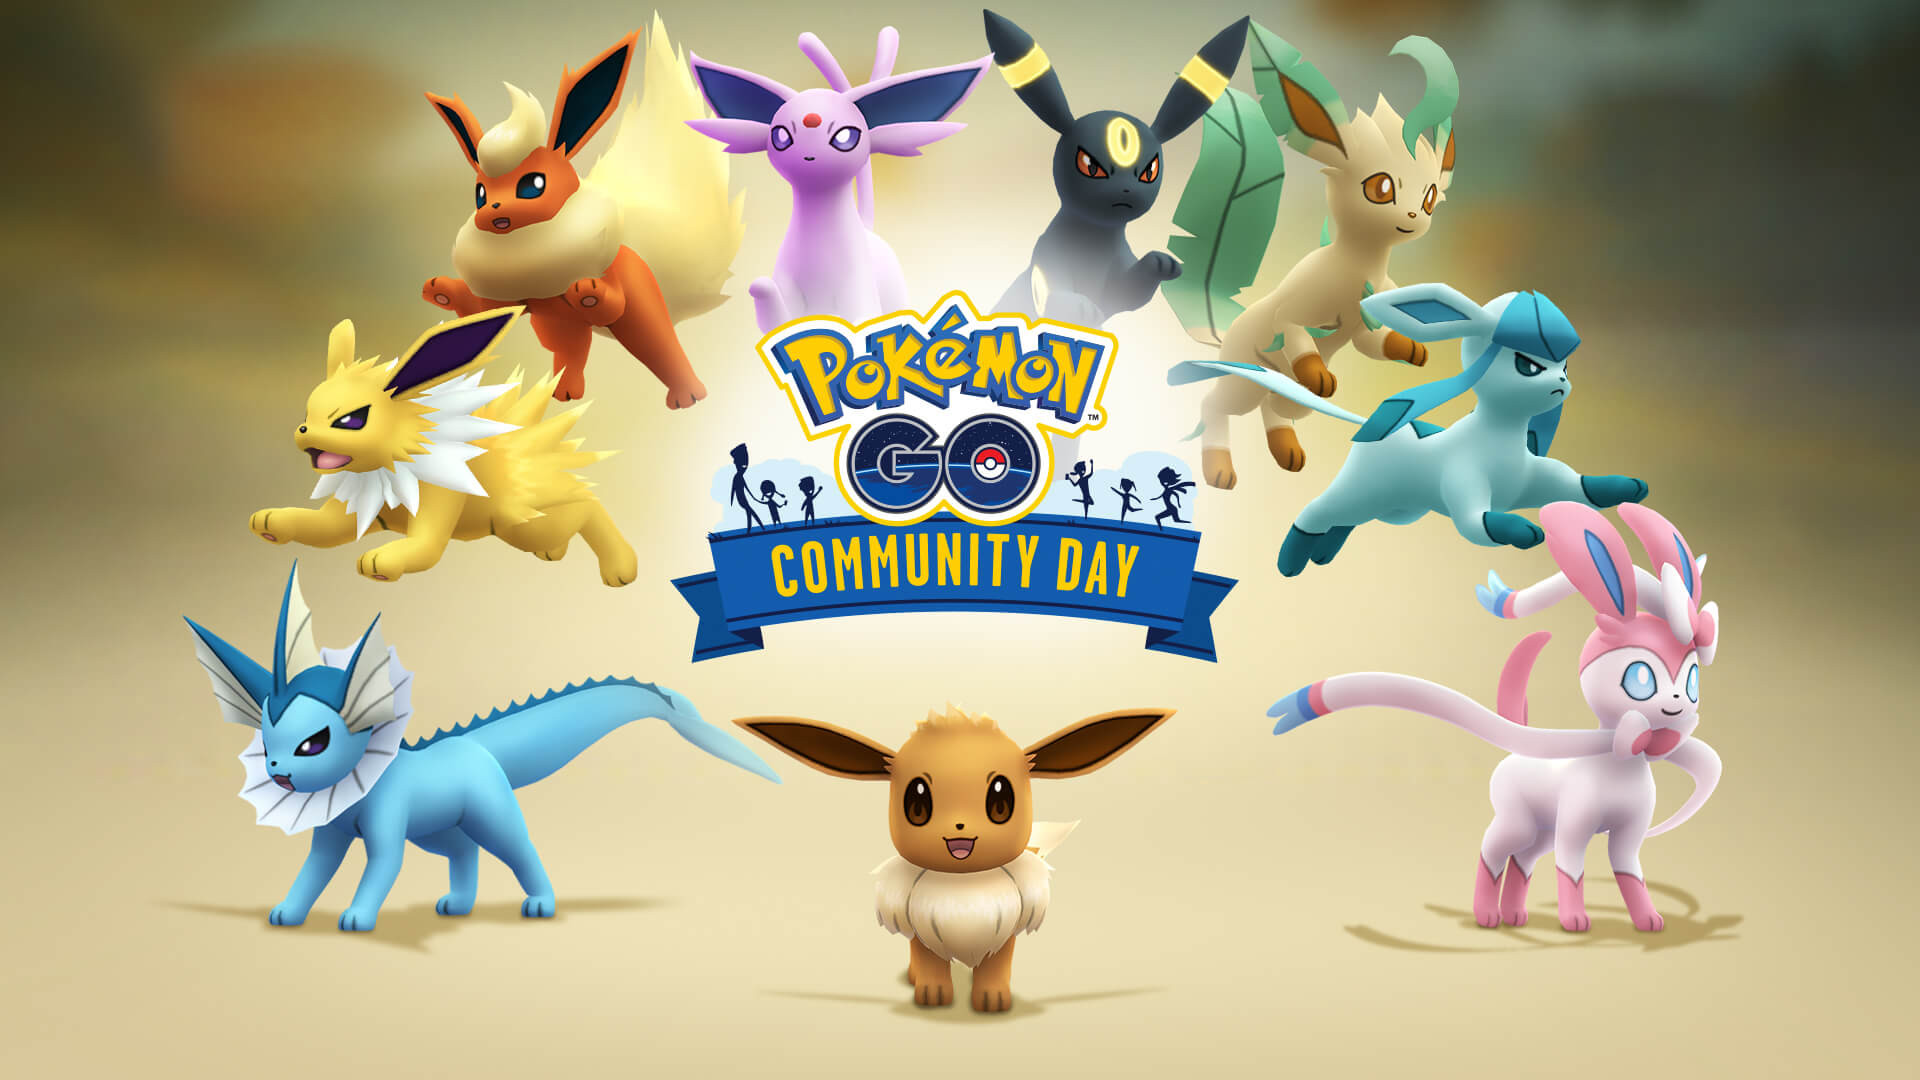 [Guide] All Eevee-lutions, best moves and skillsets for Pokemon GO - Inven  Global